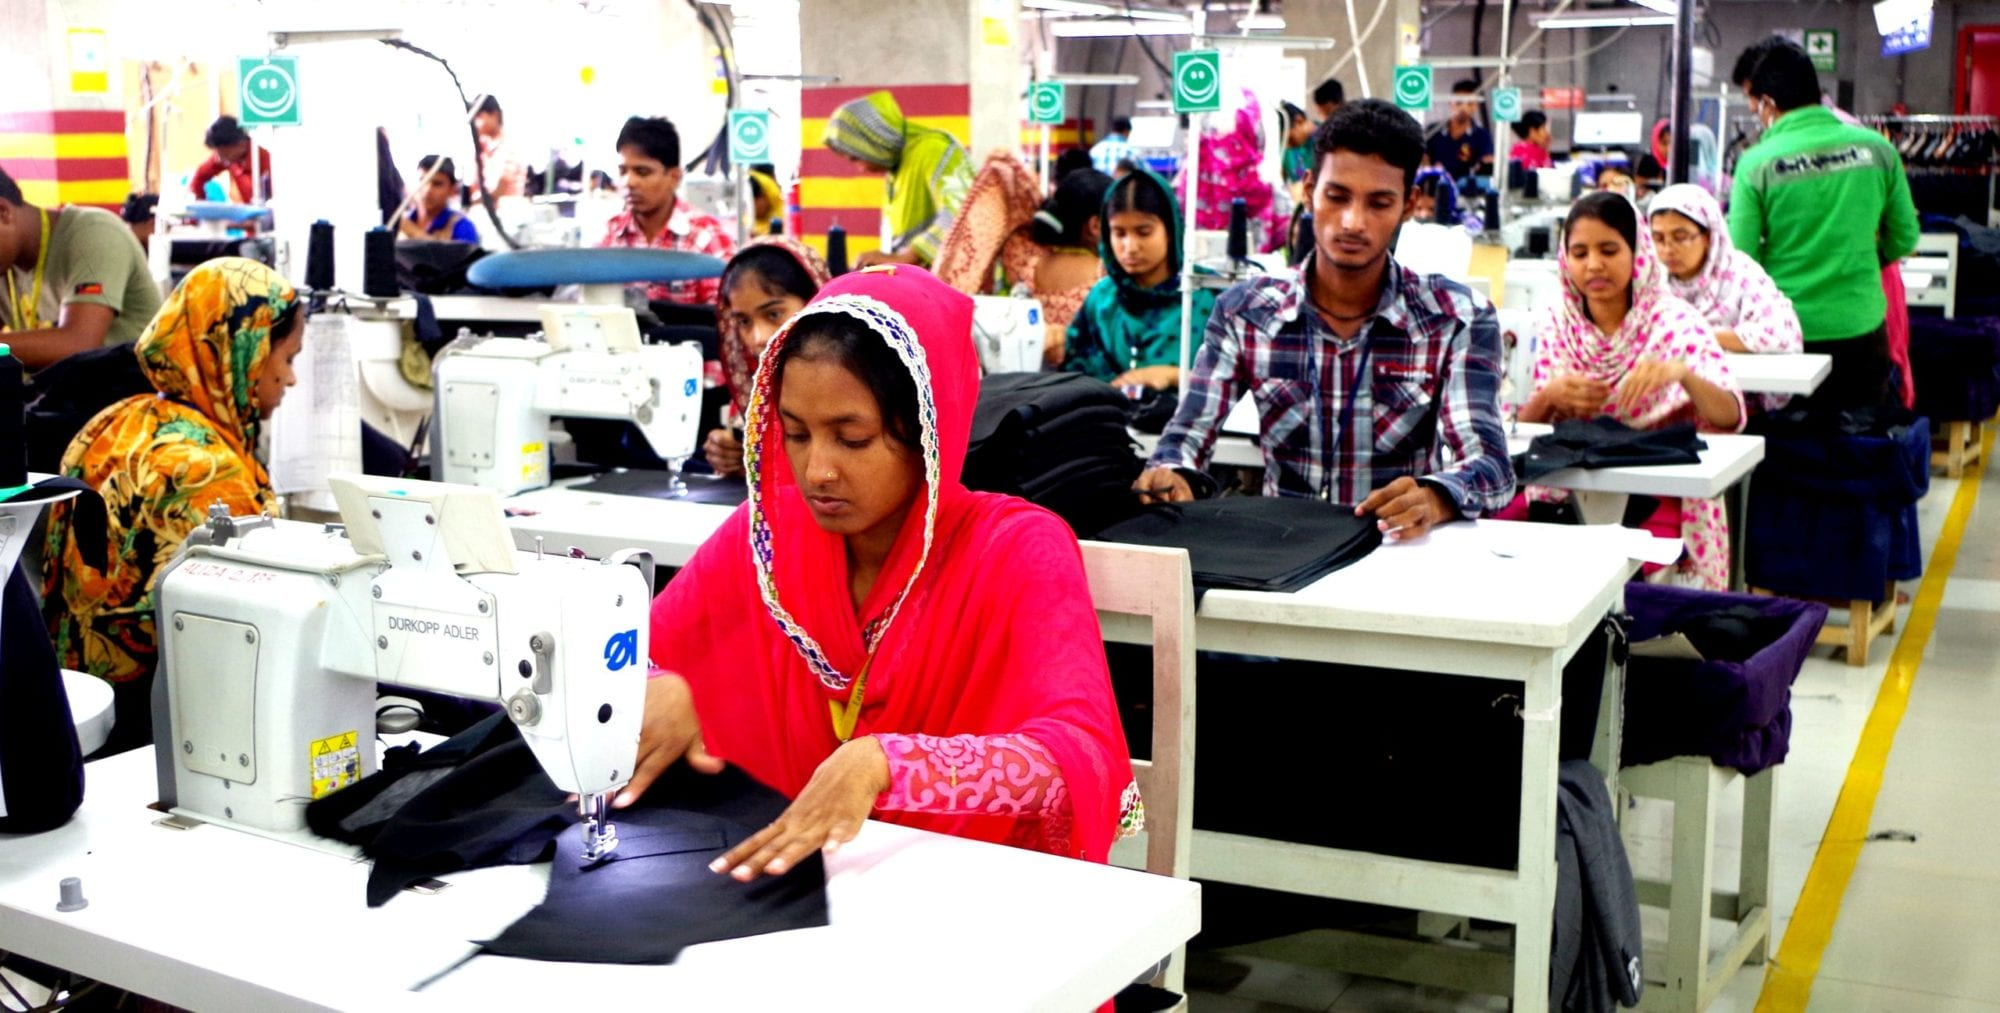 Bangladesh, garment workers, worker rights, rule of law, Solidarity Center